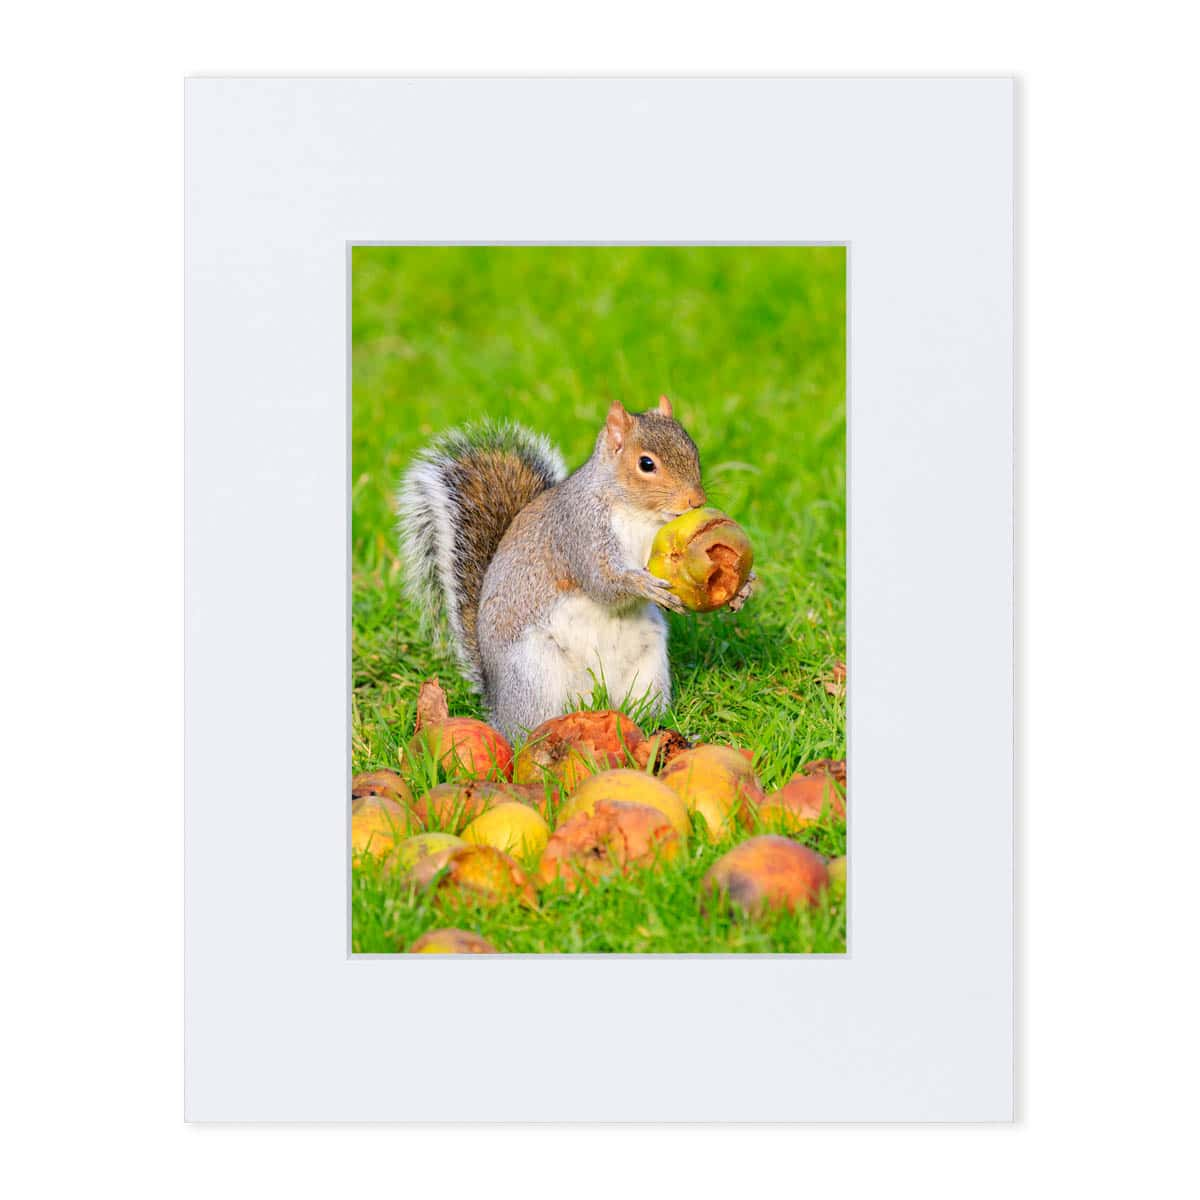 Grey Squirrel eating apples. Mounted print 8 x 10 inches